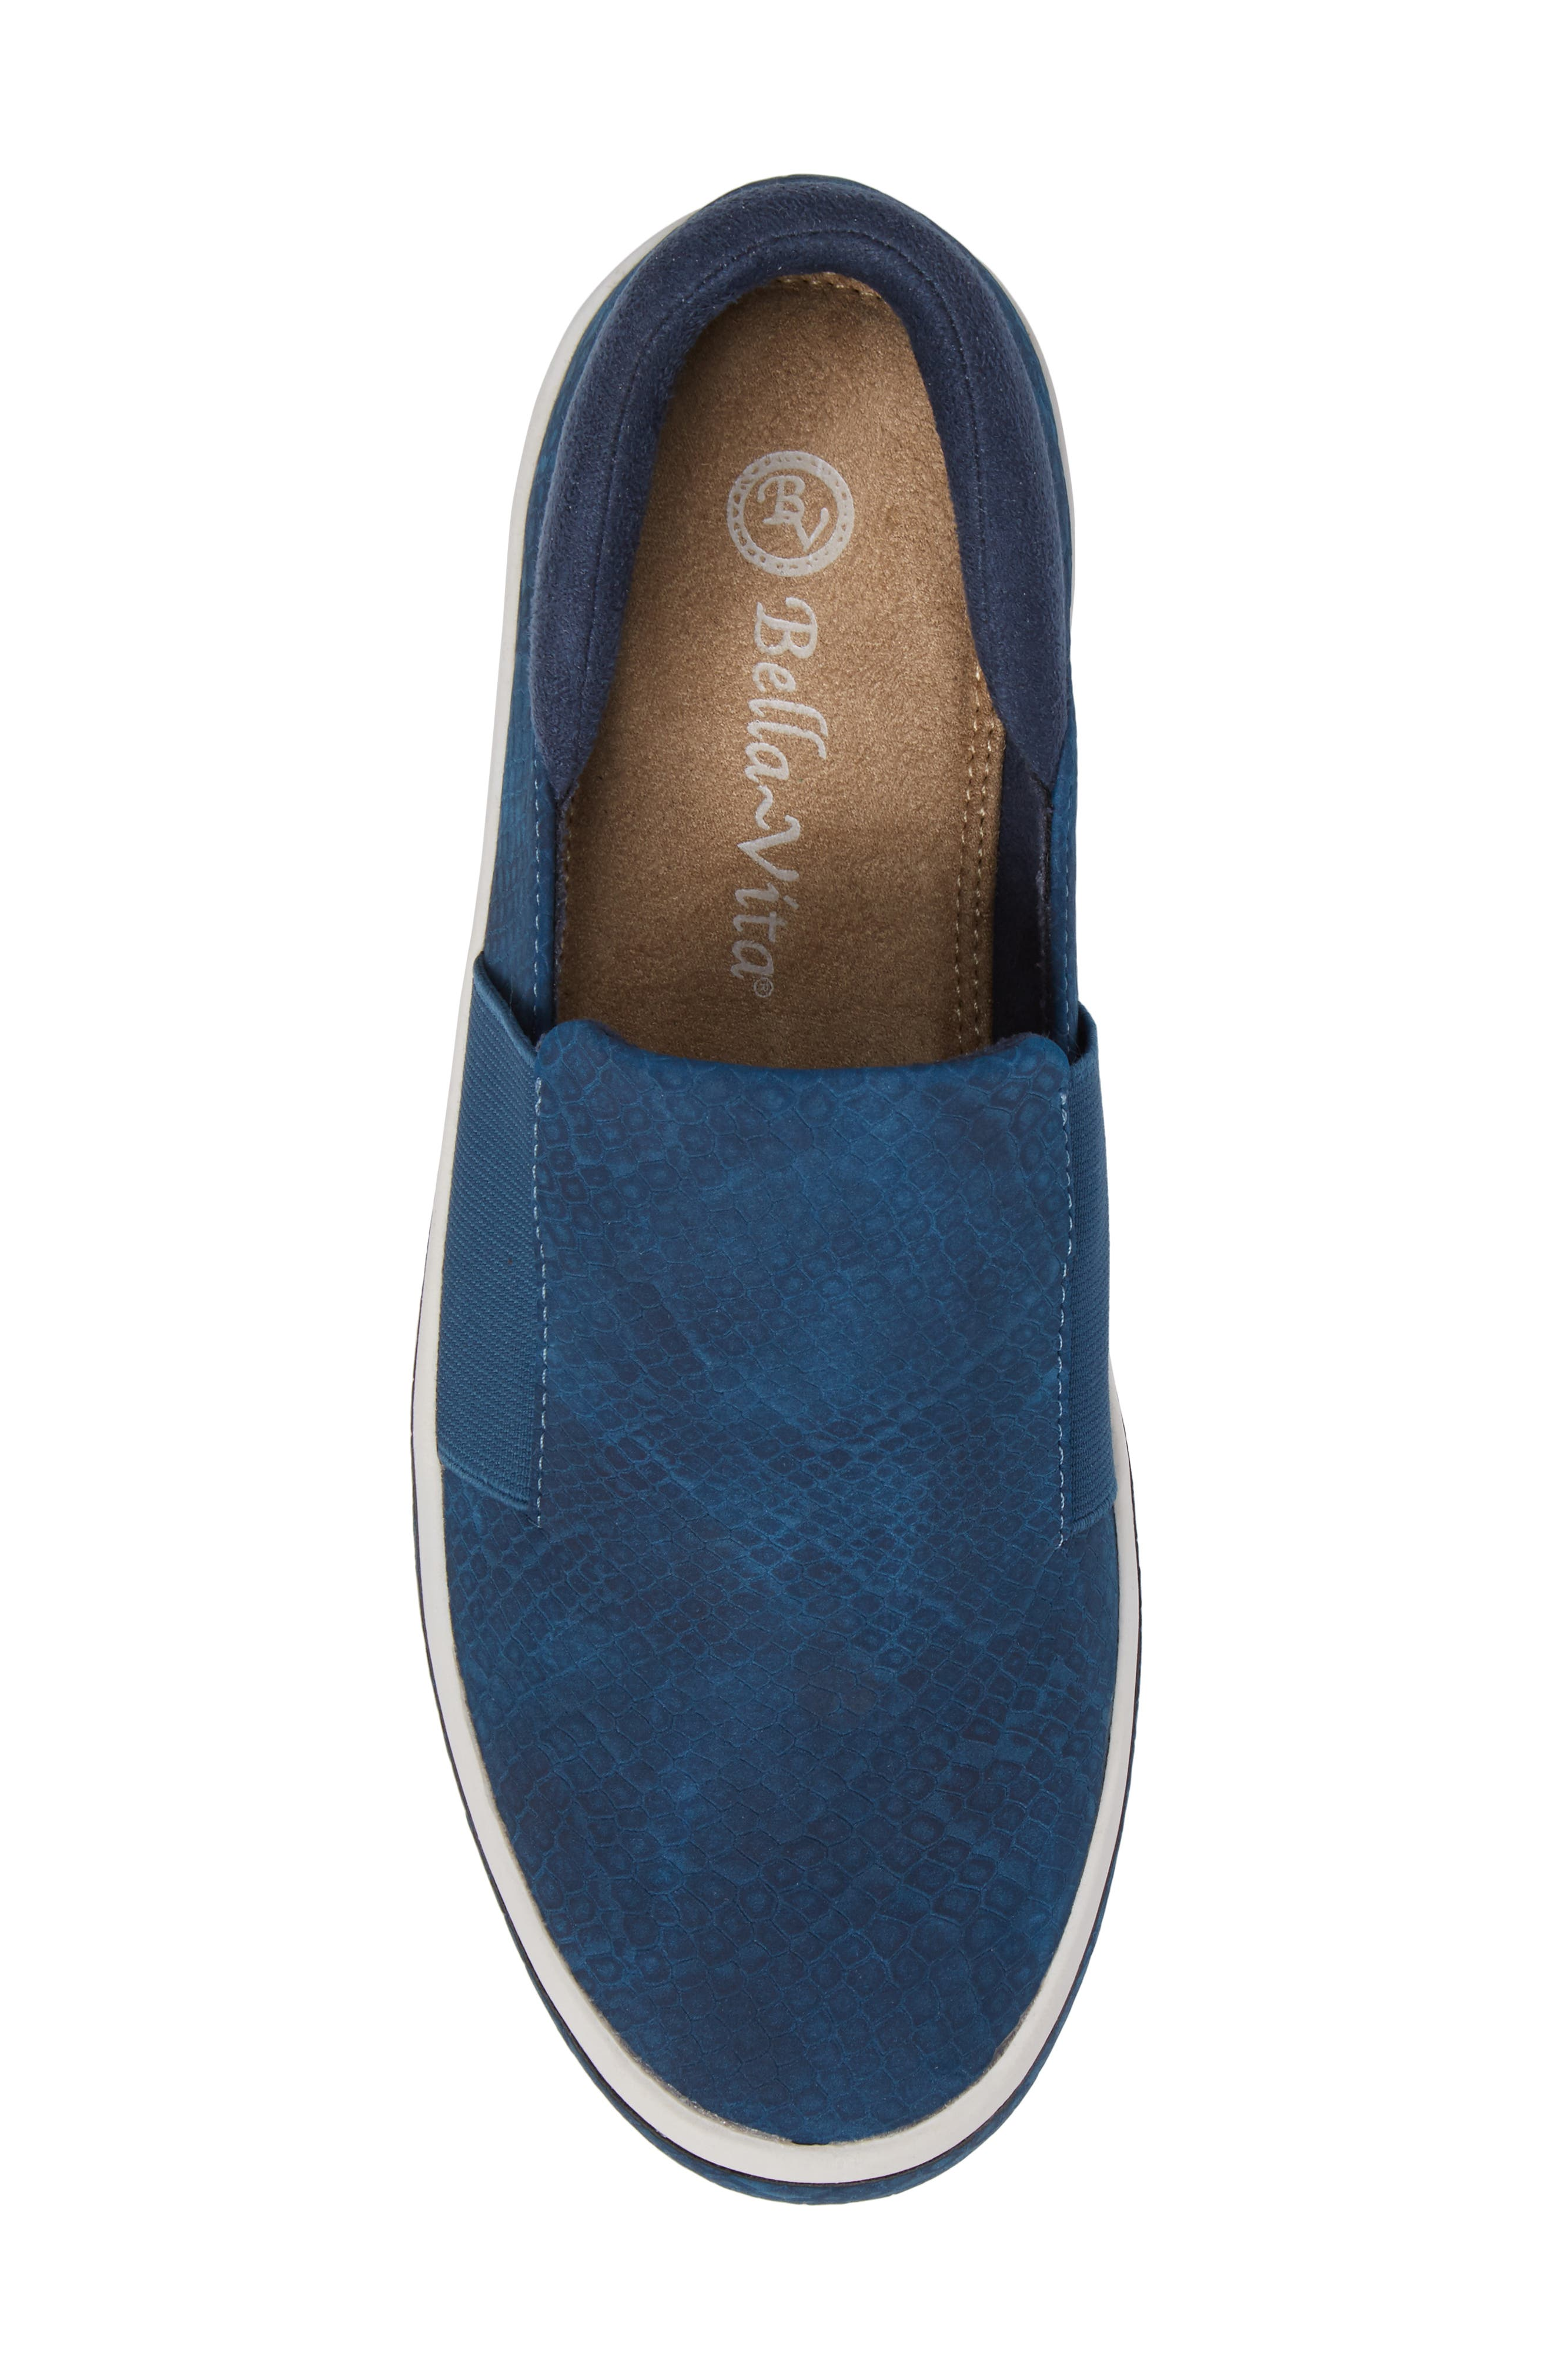 Switch II Slip-On Sneaker,                             Alternate thumbnail 5, color,                             NAVY PRINTED LEATHER